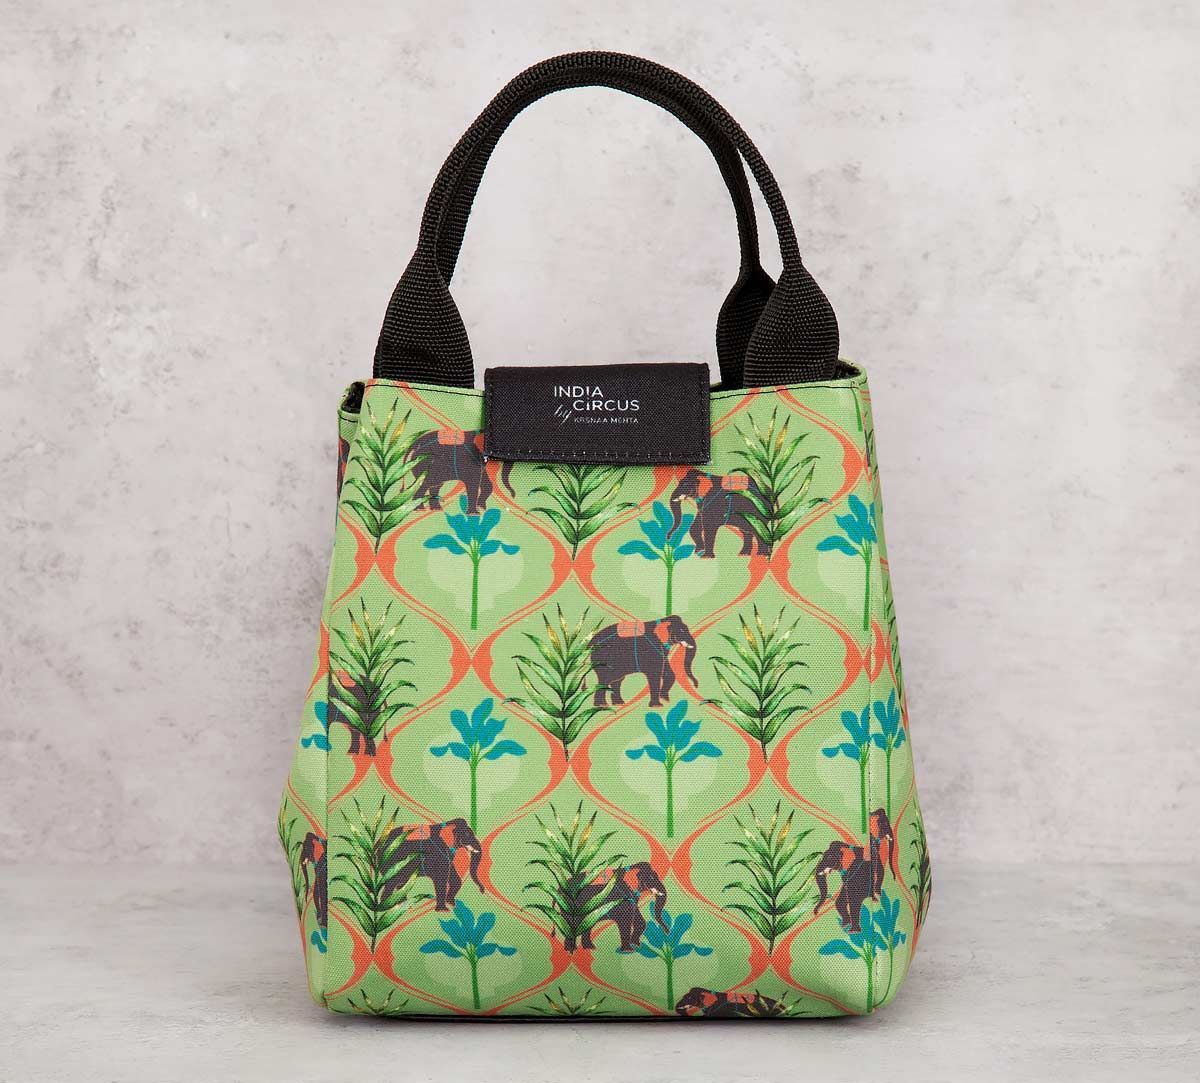 India Circus Jungle Safari Lunch Bag